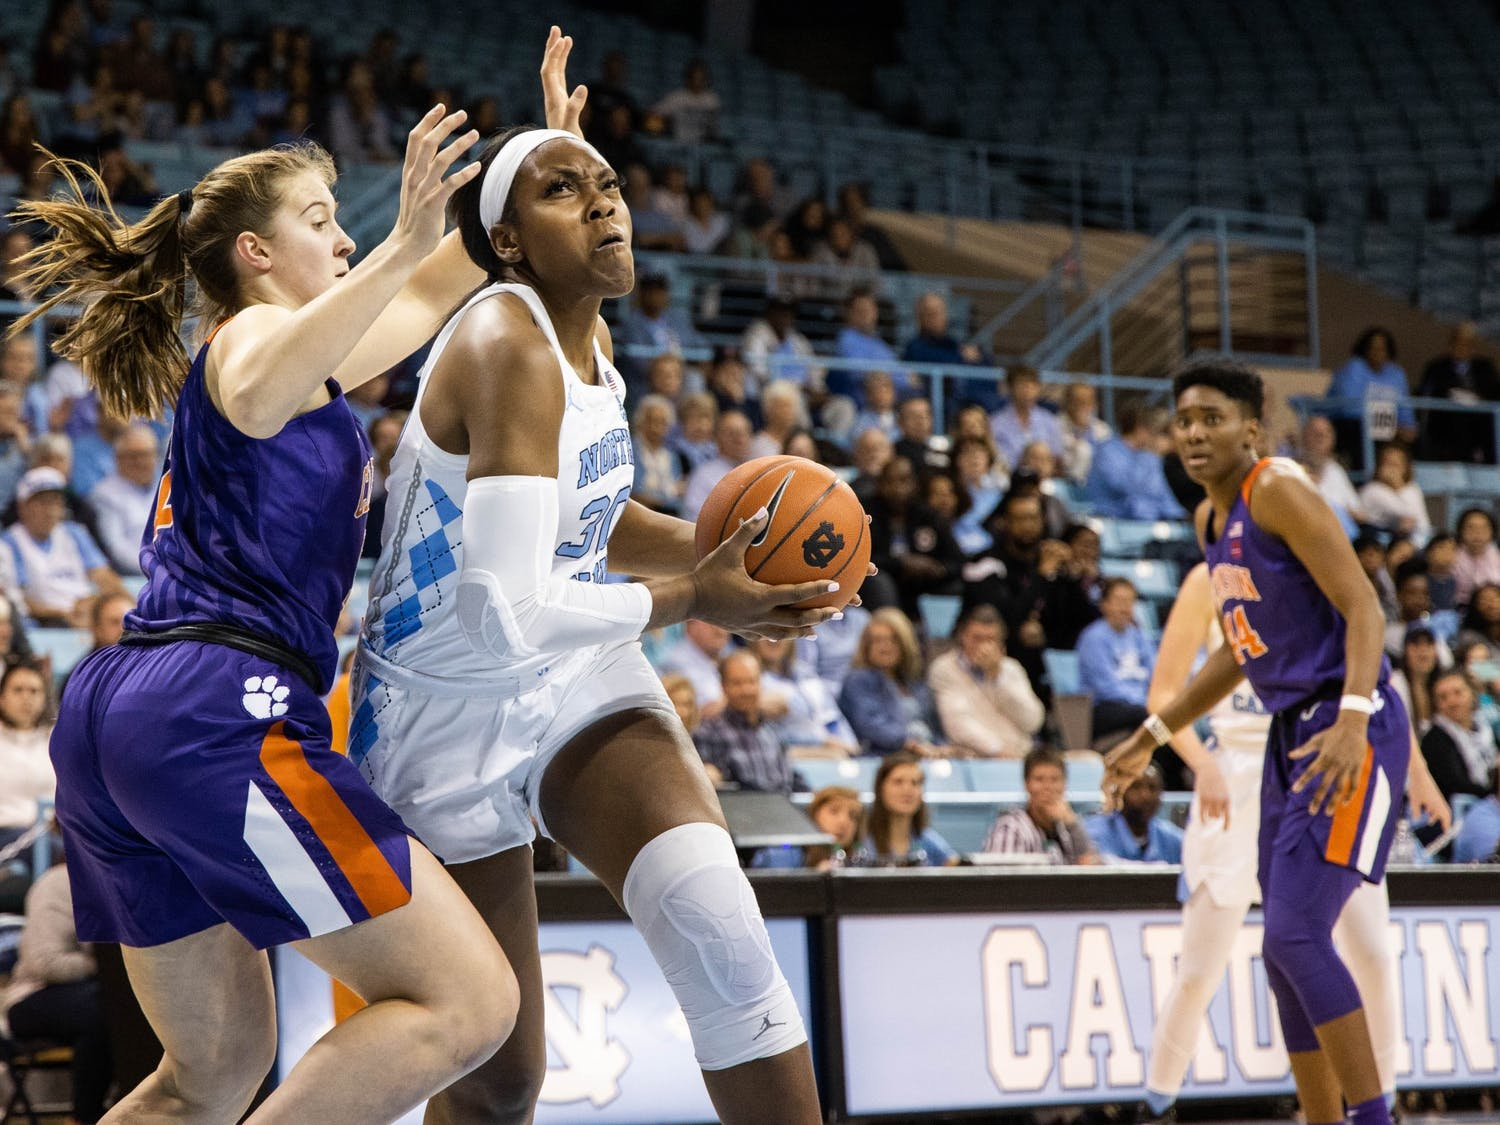 UNC junior center Janelle Bailey (30) pushes past Clemson University freshman center Hannah Hank (12). The Tar Heels beat the Tigers 86-72 on Sunday, Feb. 2, 2020 in Carmichael Arena.